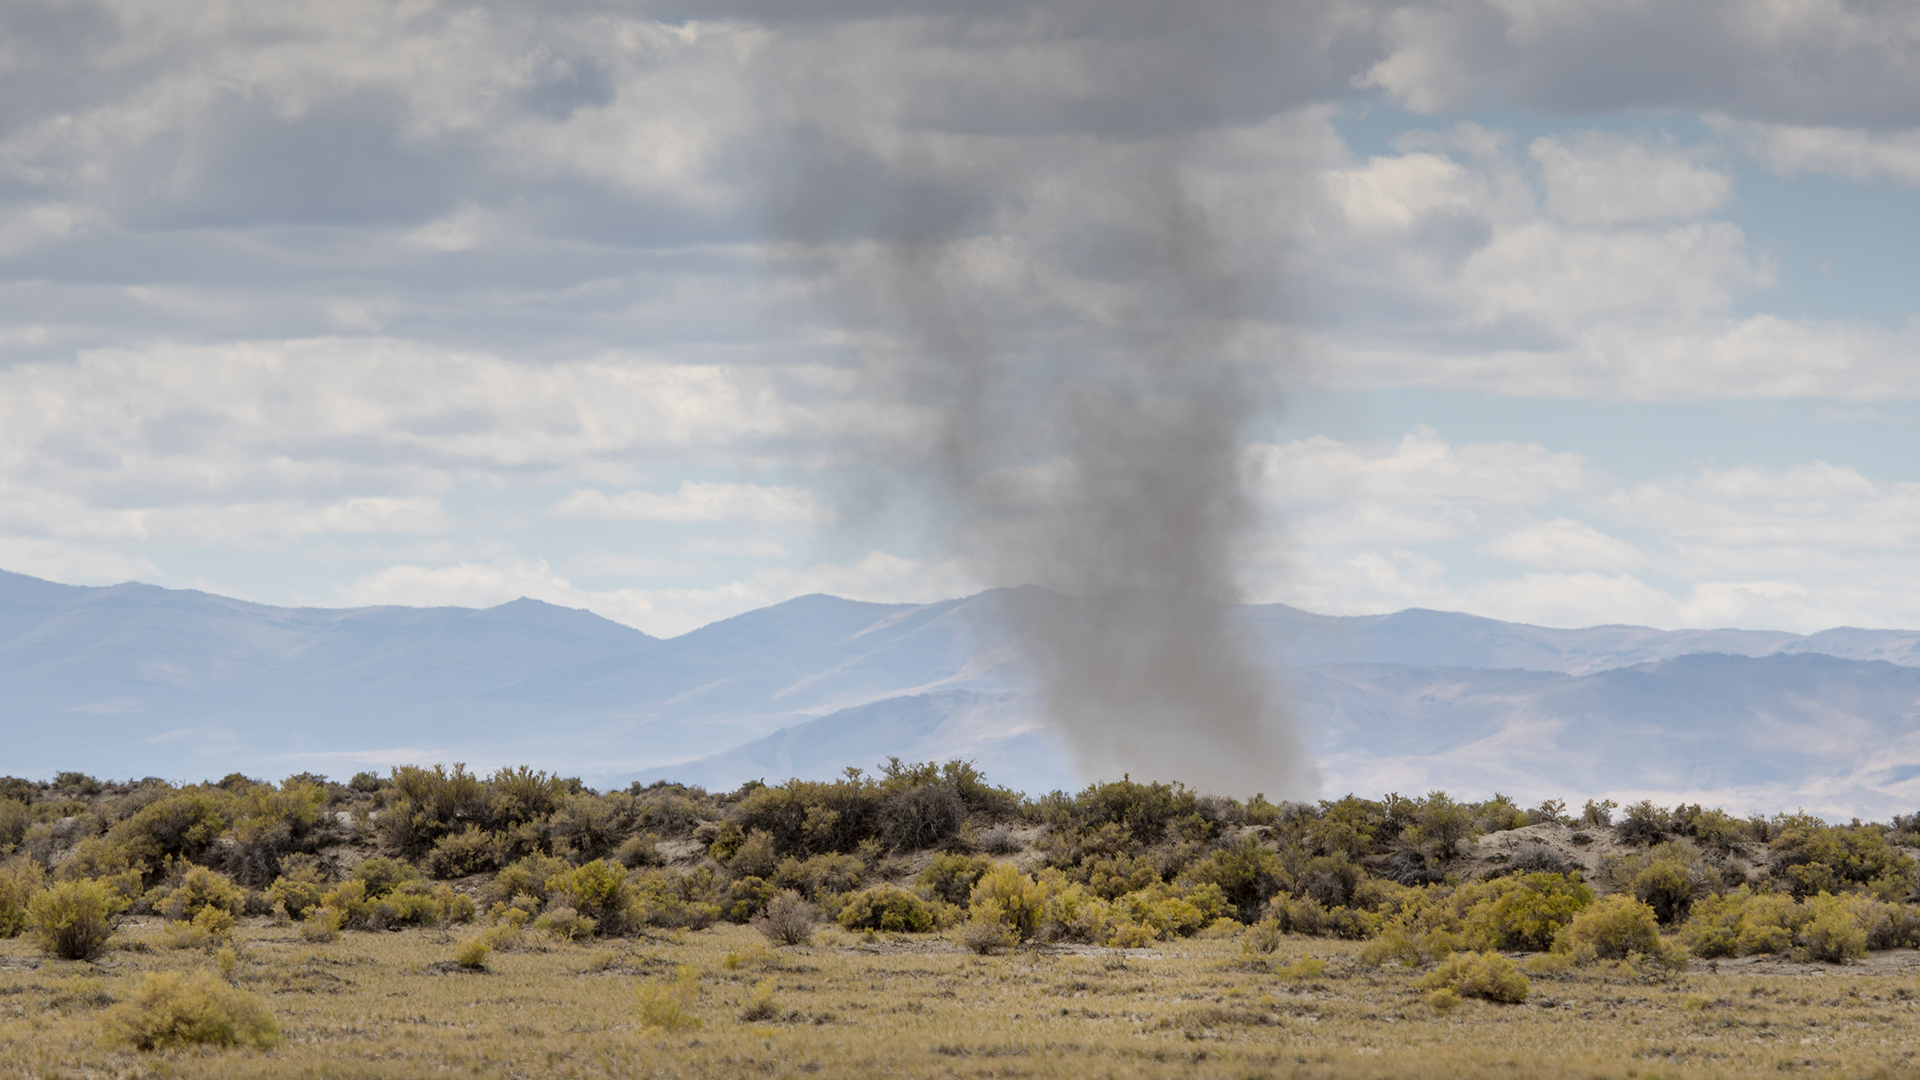 A dust devil, moving on top of the desert sagebrush